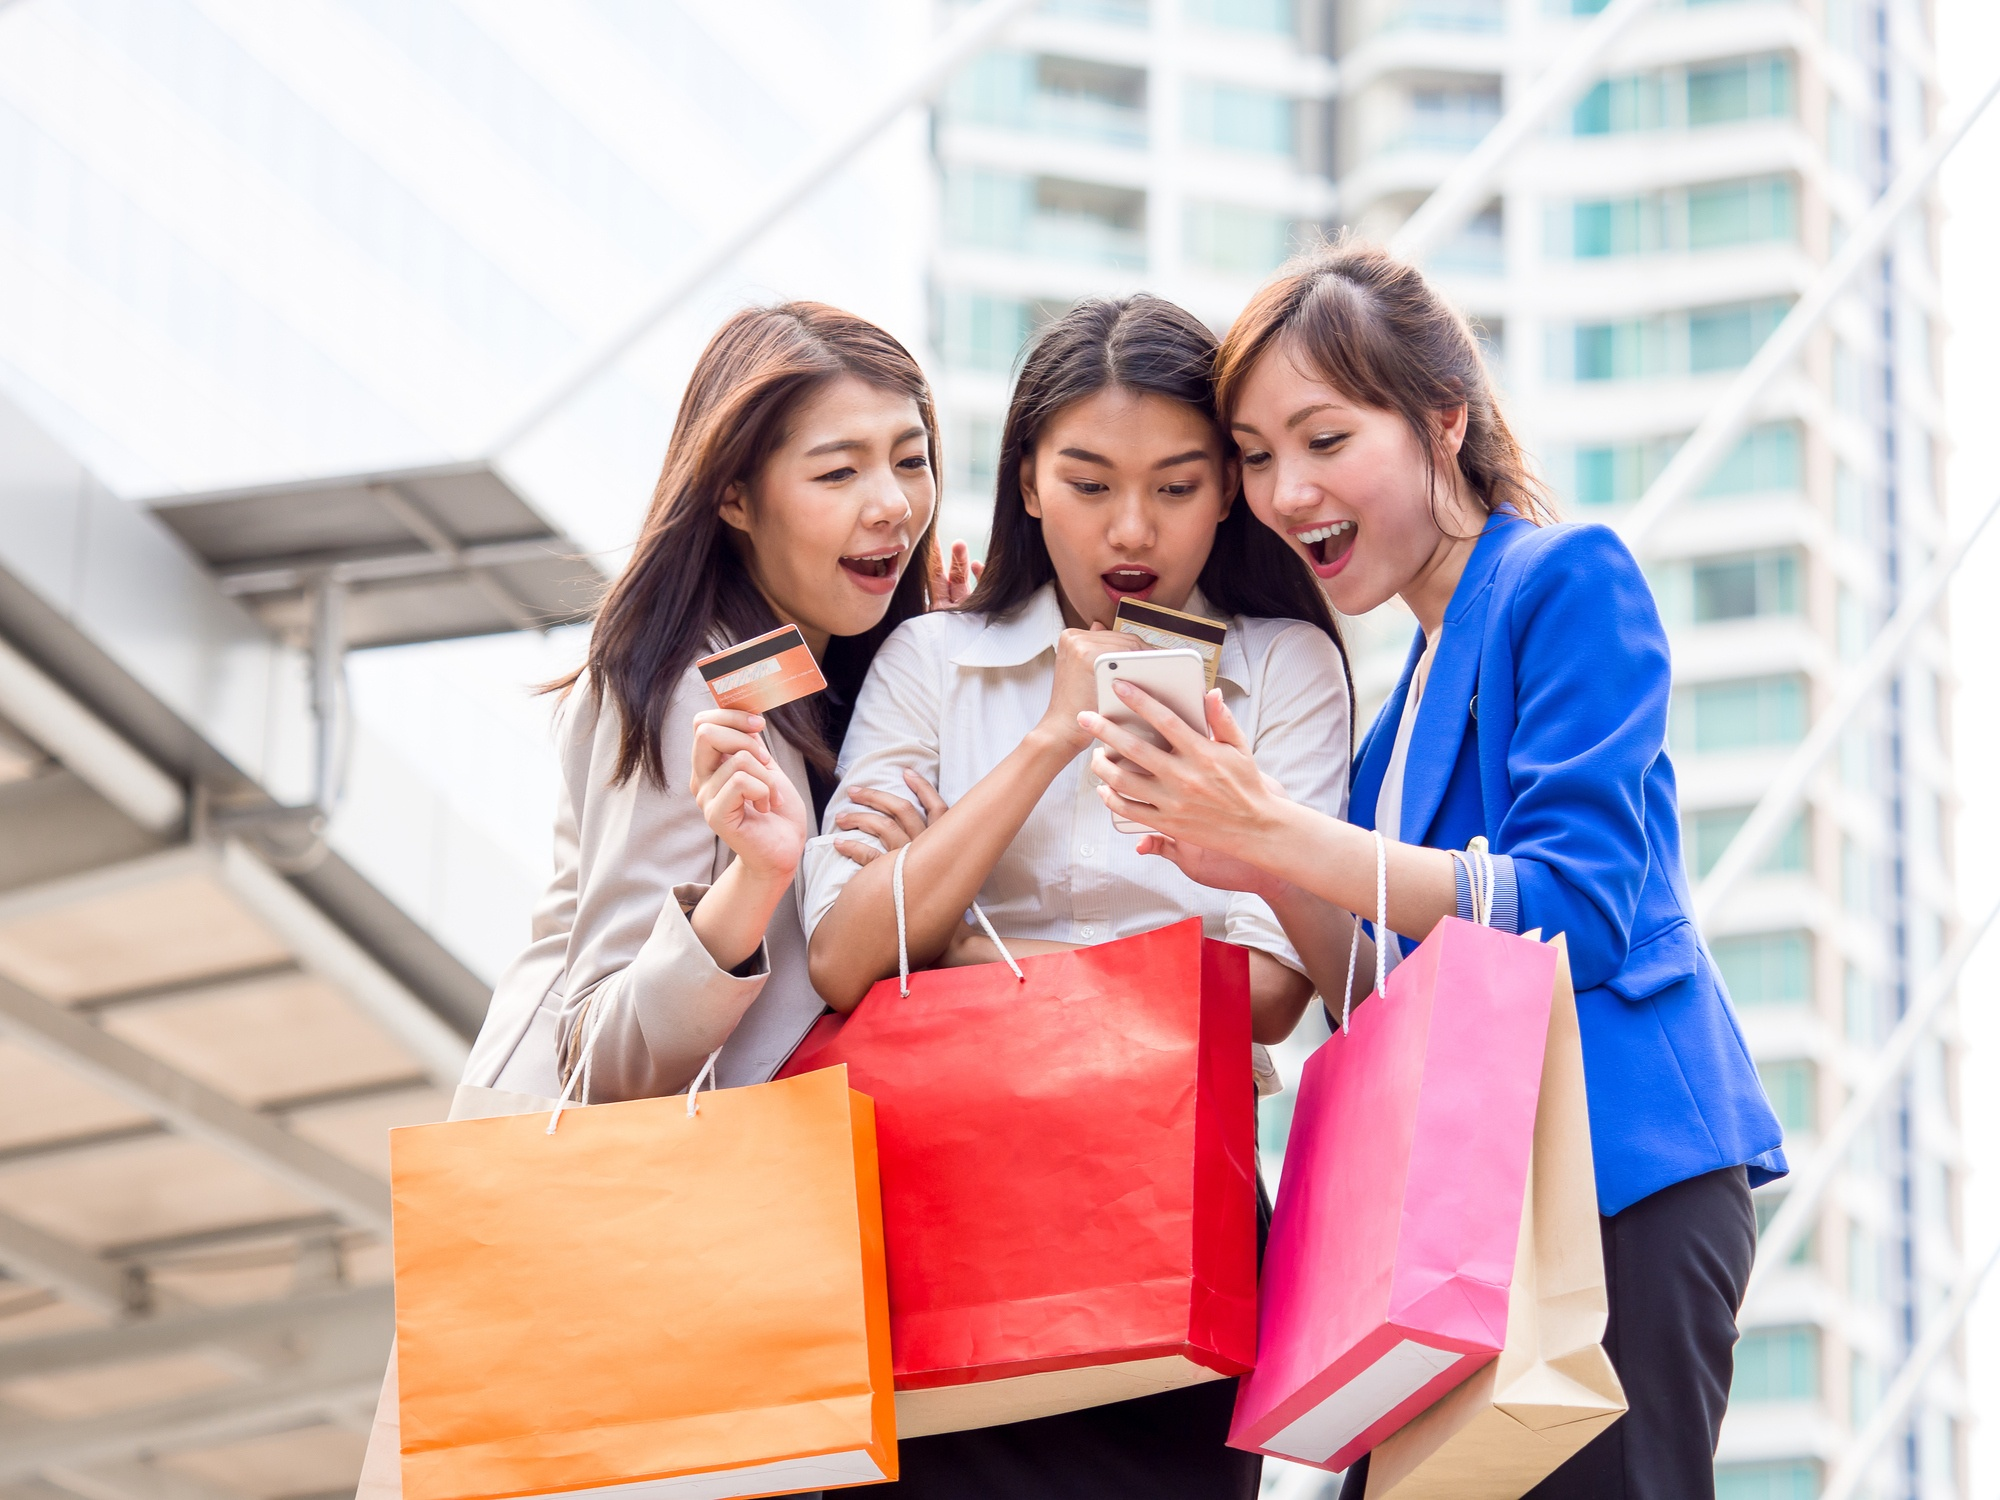 three girls with shopping bags and credit cards looking at phone